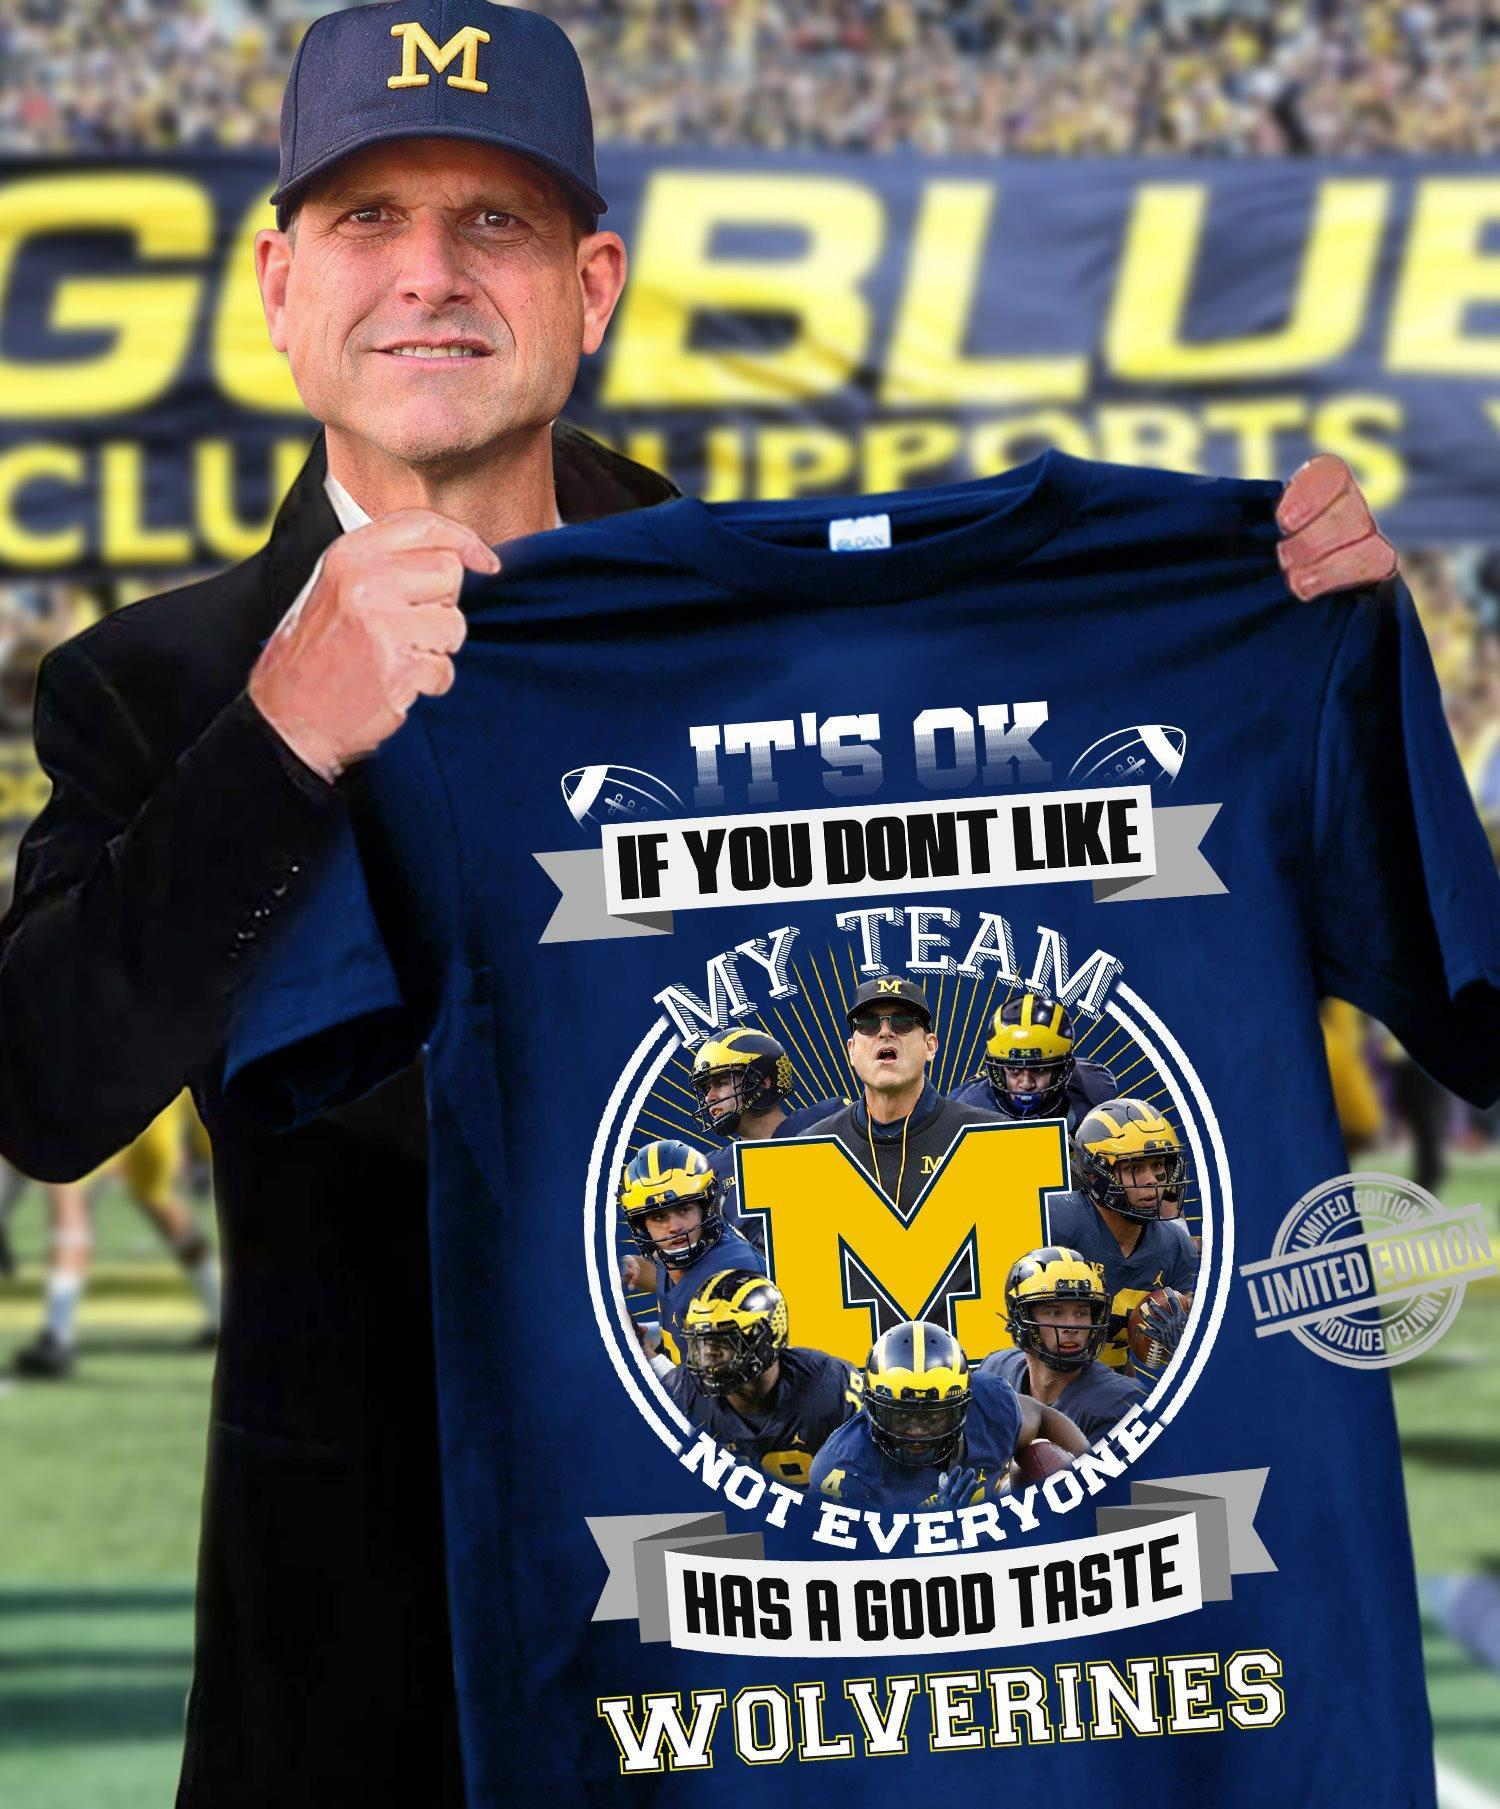 It's Ok If You Don't Like My Team Not Everyone Has A Good Taste Wolverines Shirt